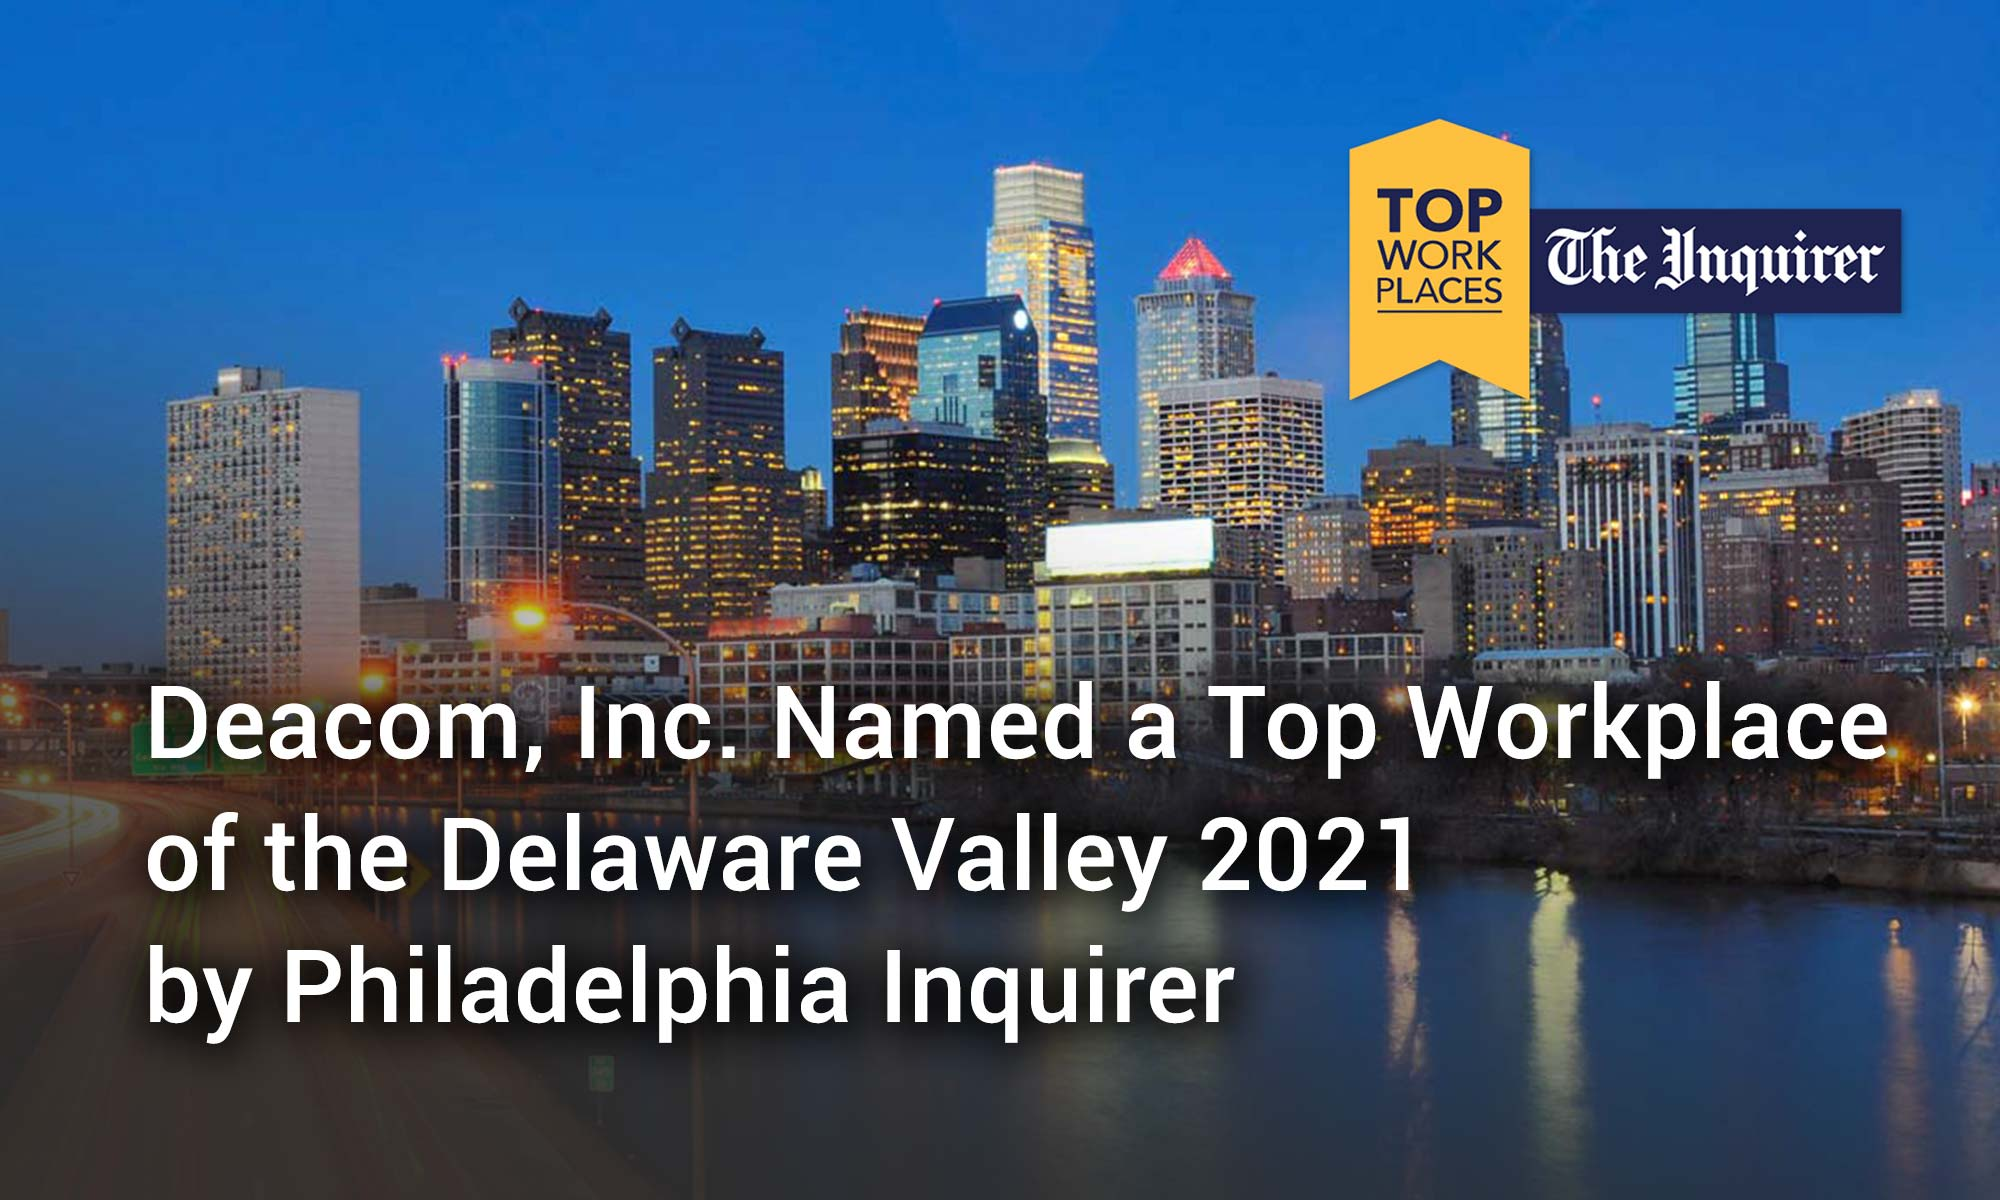 Deacom, Inc. Named a Top Workplace of the Delaware Valley 2021 by Philadelphia Inquirer